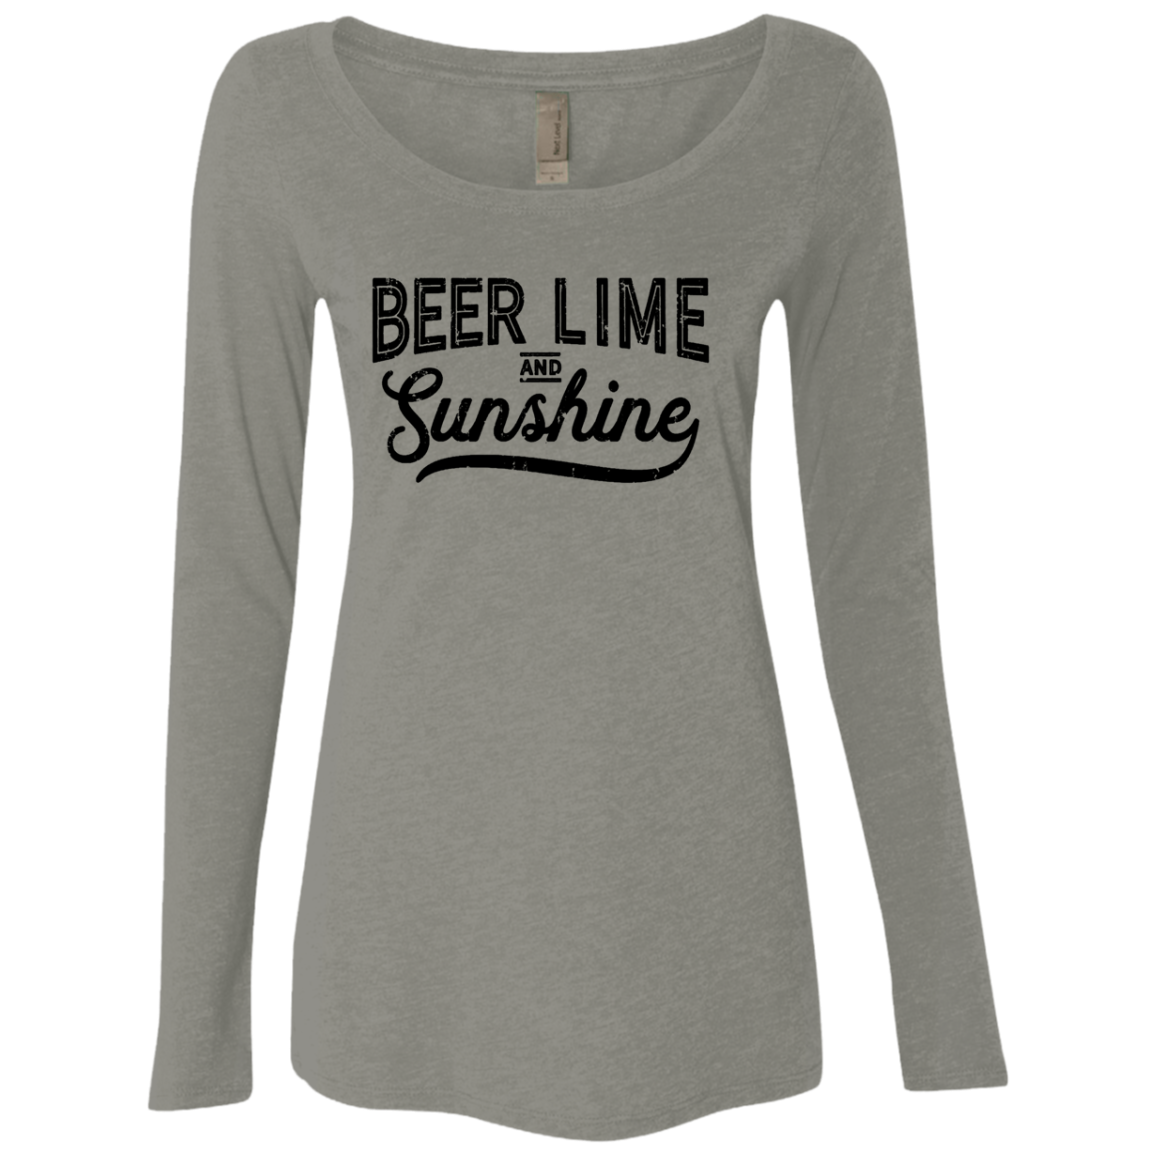 Beer Lime and Sunshine Women's Long Sleeve Tee - Trendy Tees